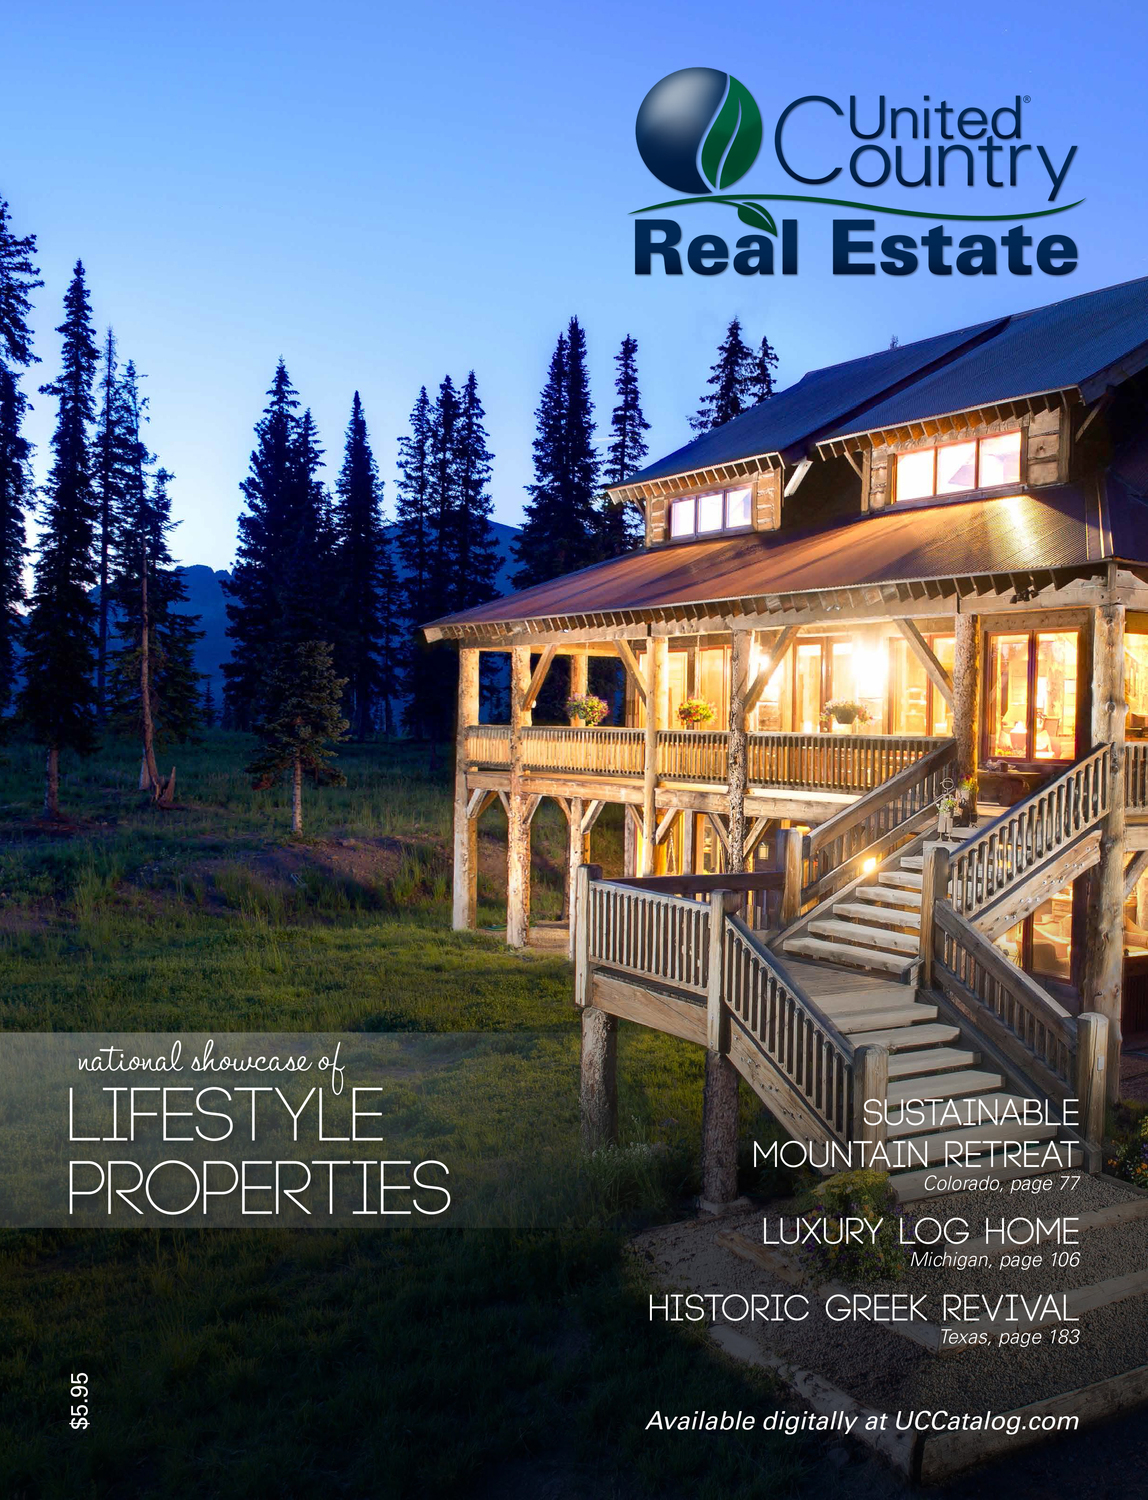 Lifestyle Properties - United Country